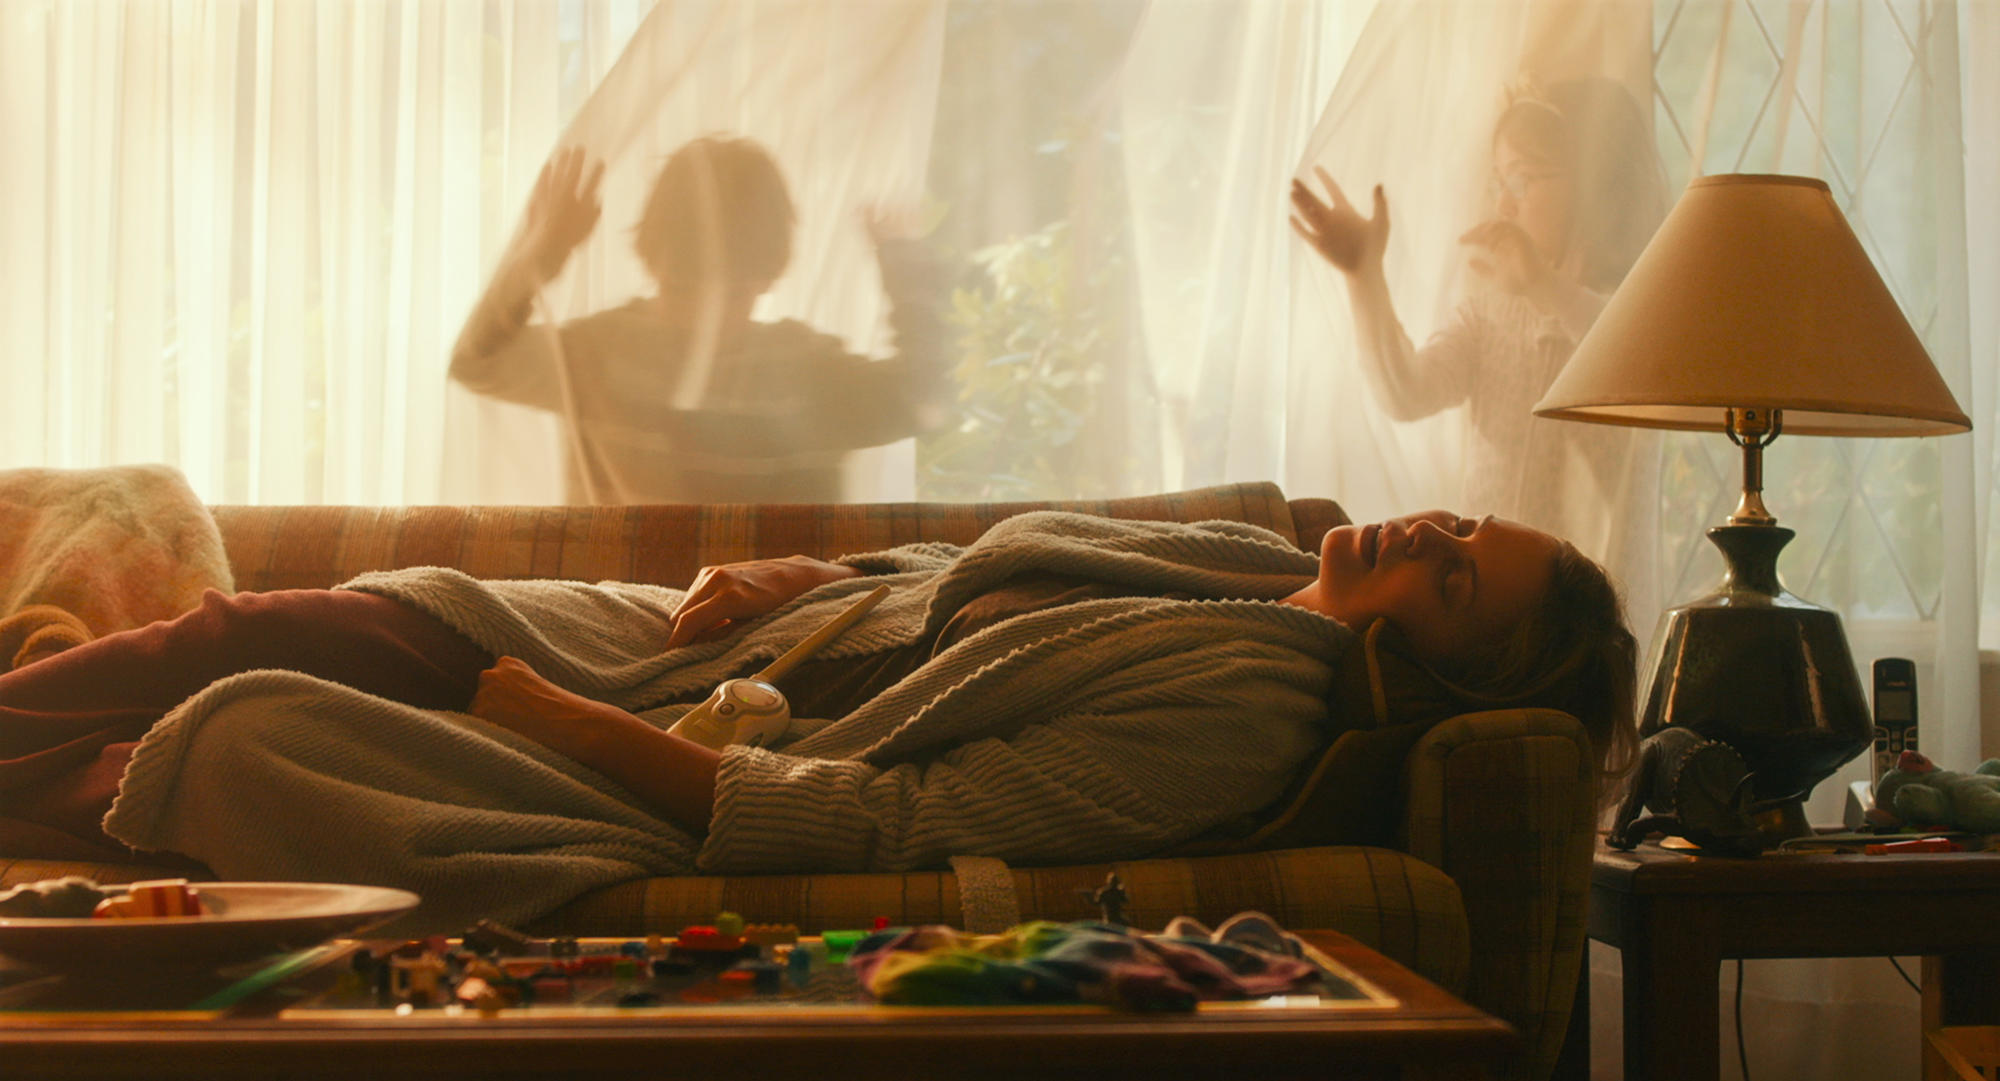 Charlize Theron in Movie Tully Sleeping on Couch